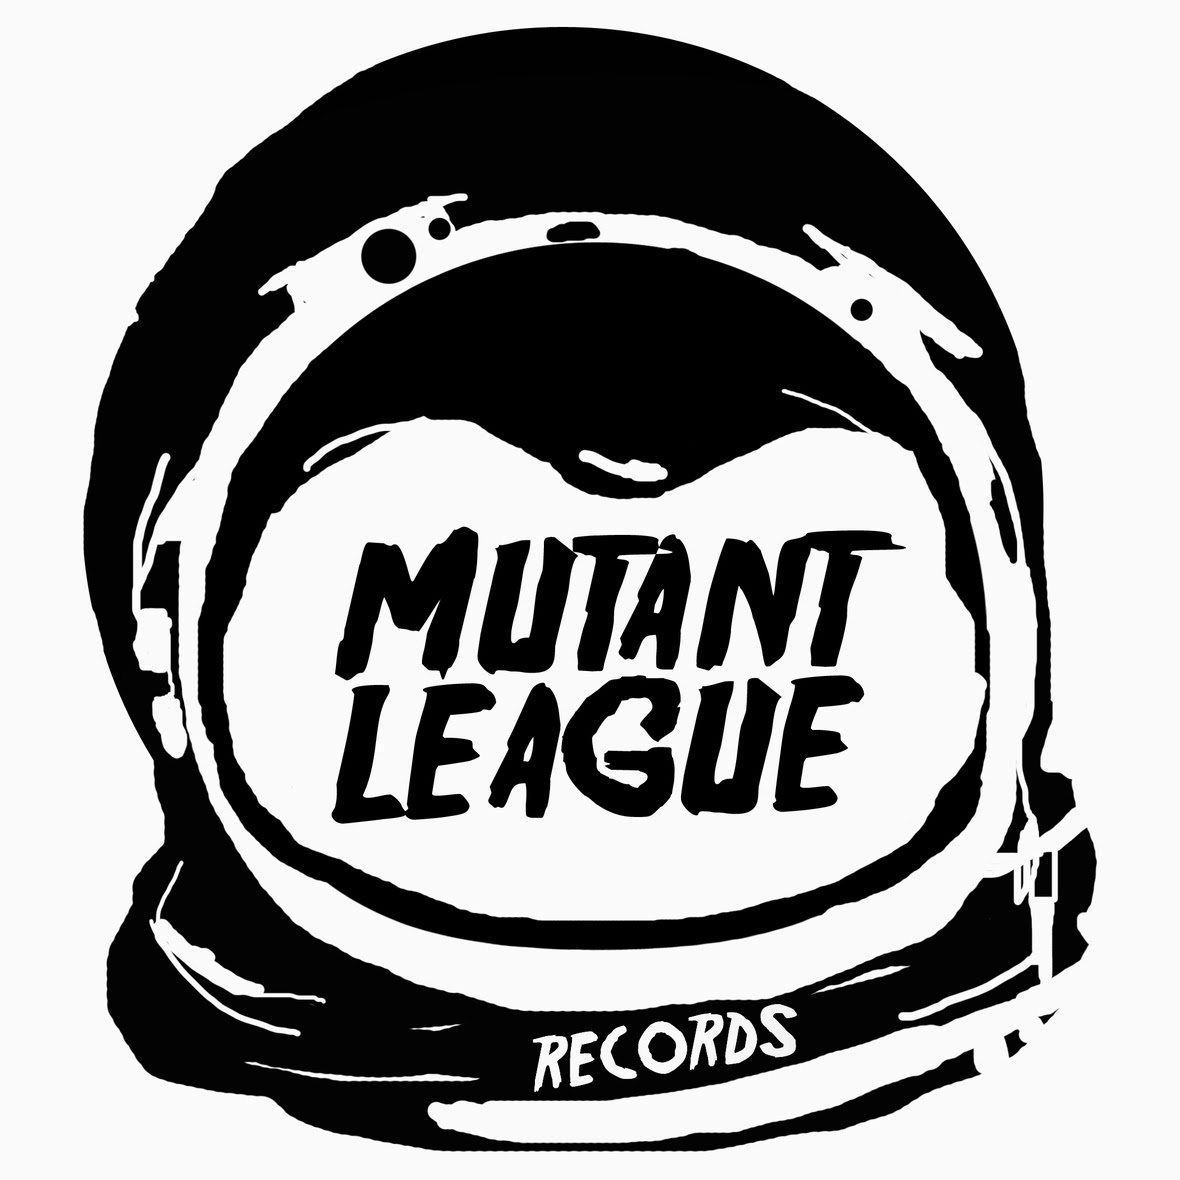 mutant league records logo